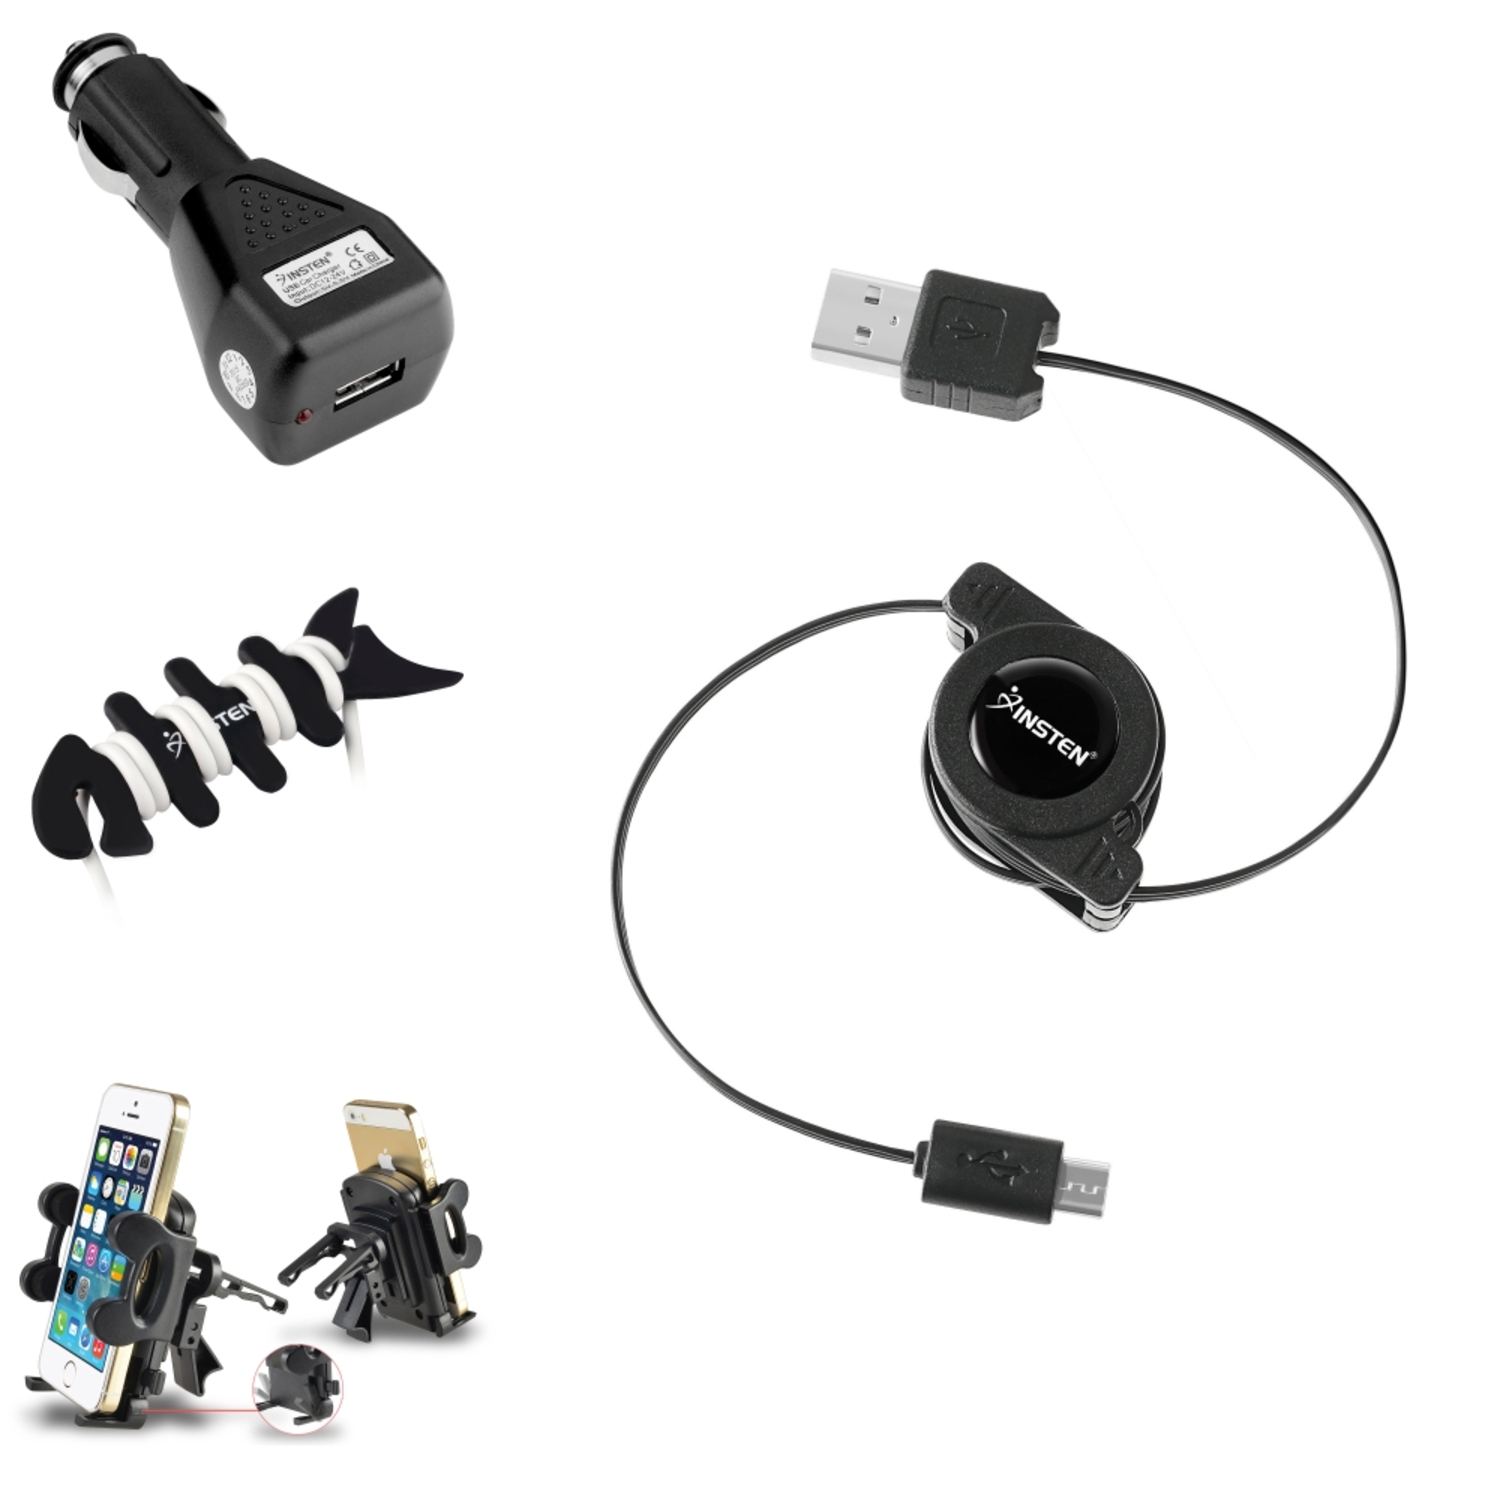 Insten Mount + Black Car Charger + Cable USB Cable + Fishbone Wrap For Samsung Galaxy S4 i9500 S3